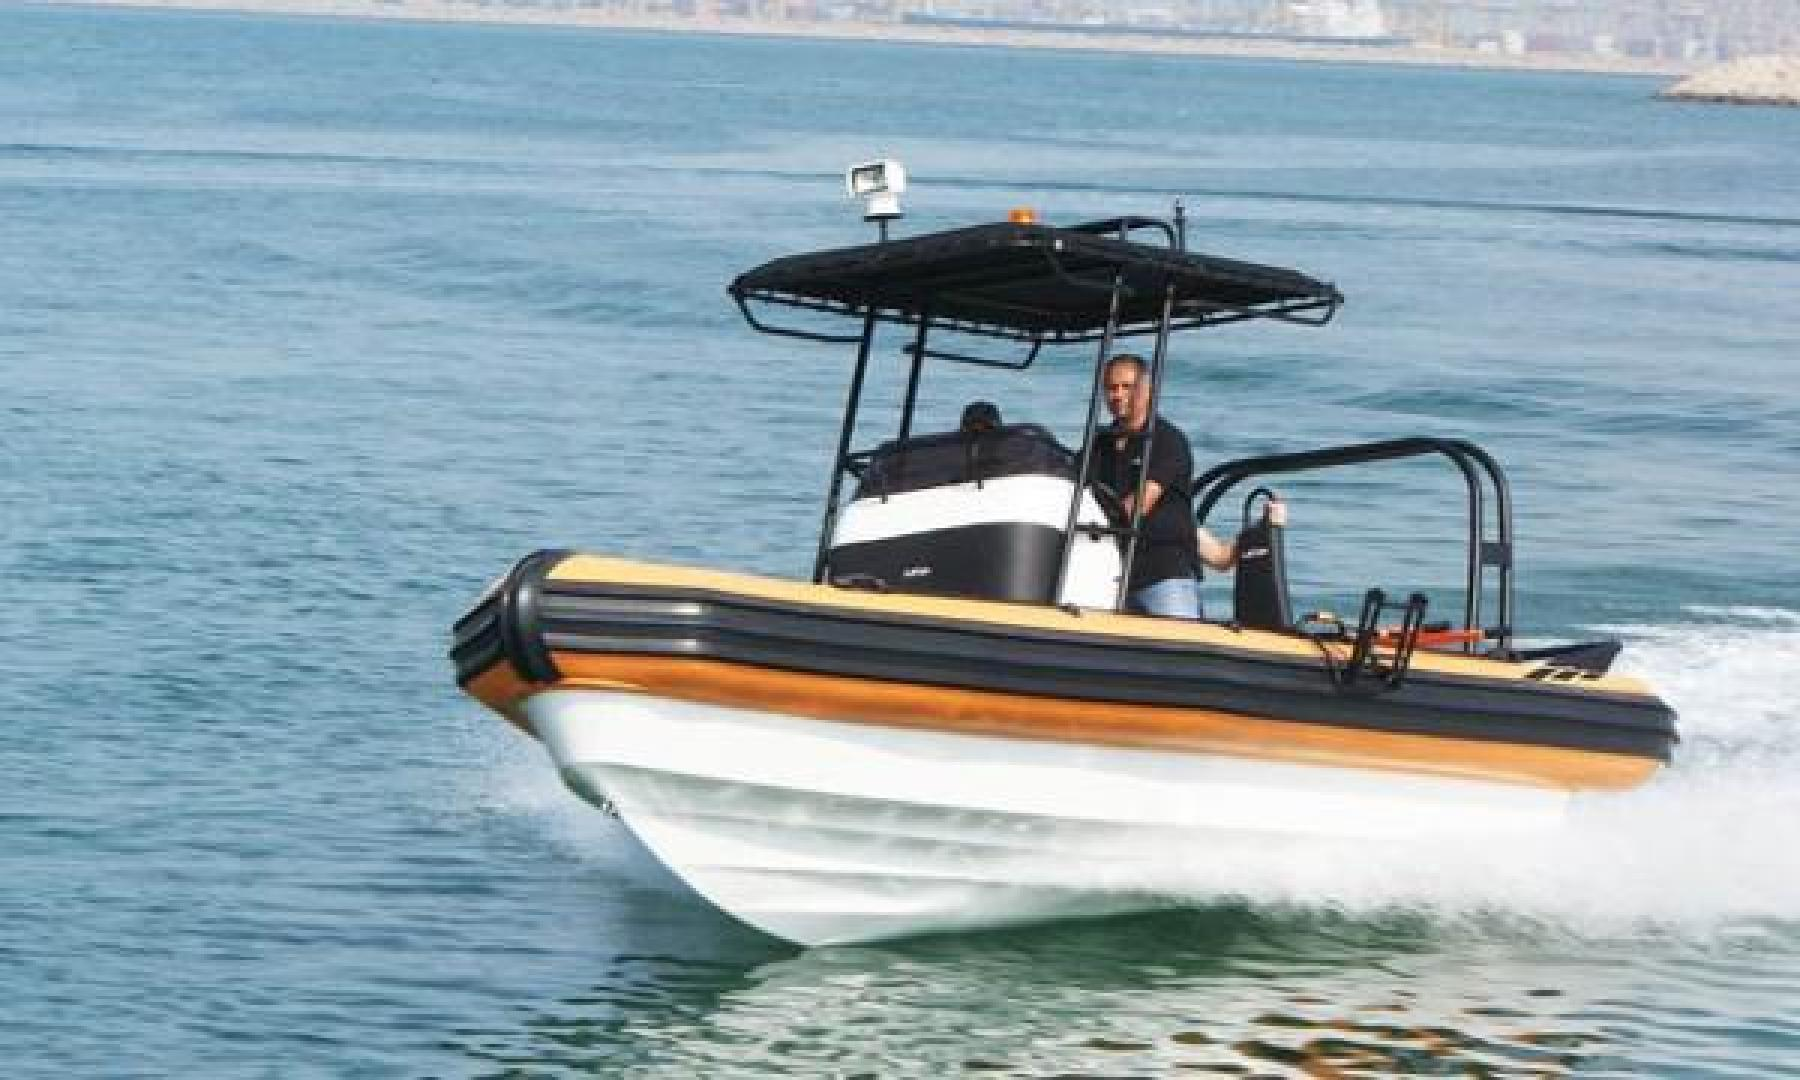 Ocean Craft Marine-9.5M RHIB Professional Search and Rescue 2021-Ocean Craft Marine 9.5M RHIB Professional Search and Rescue Fort Lauderdale-Florida-United States-1522807 | Thumbnail